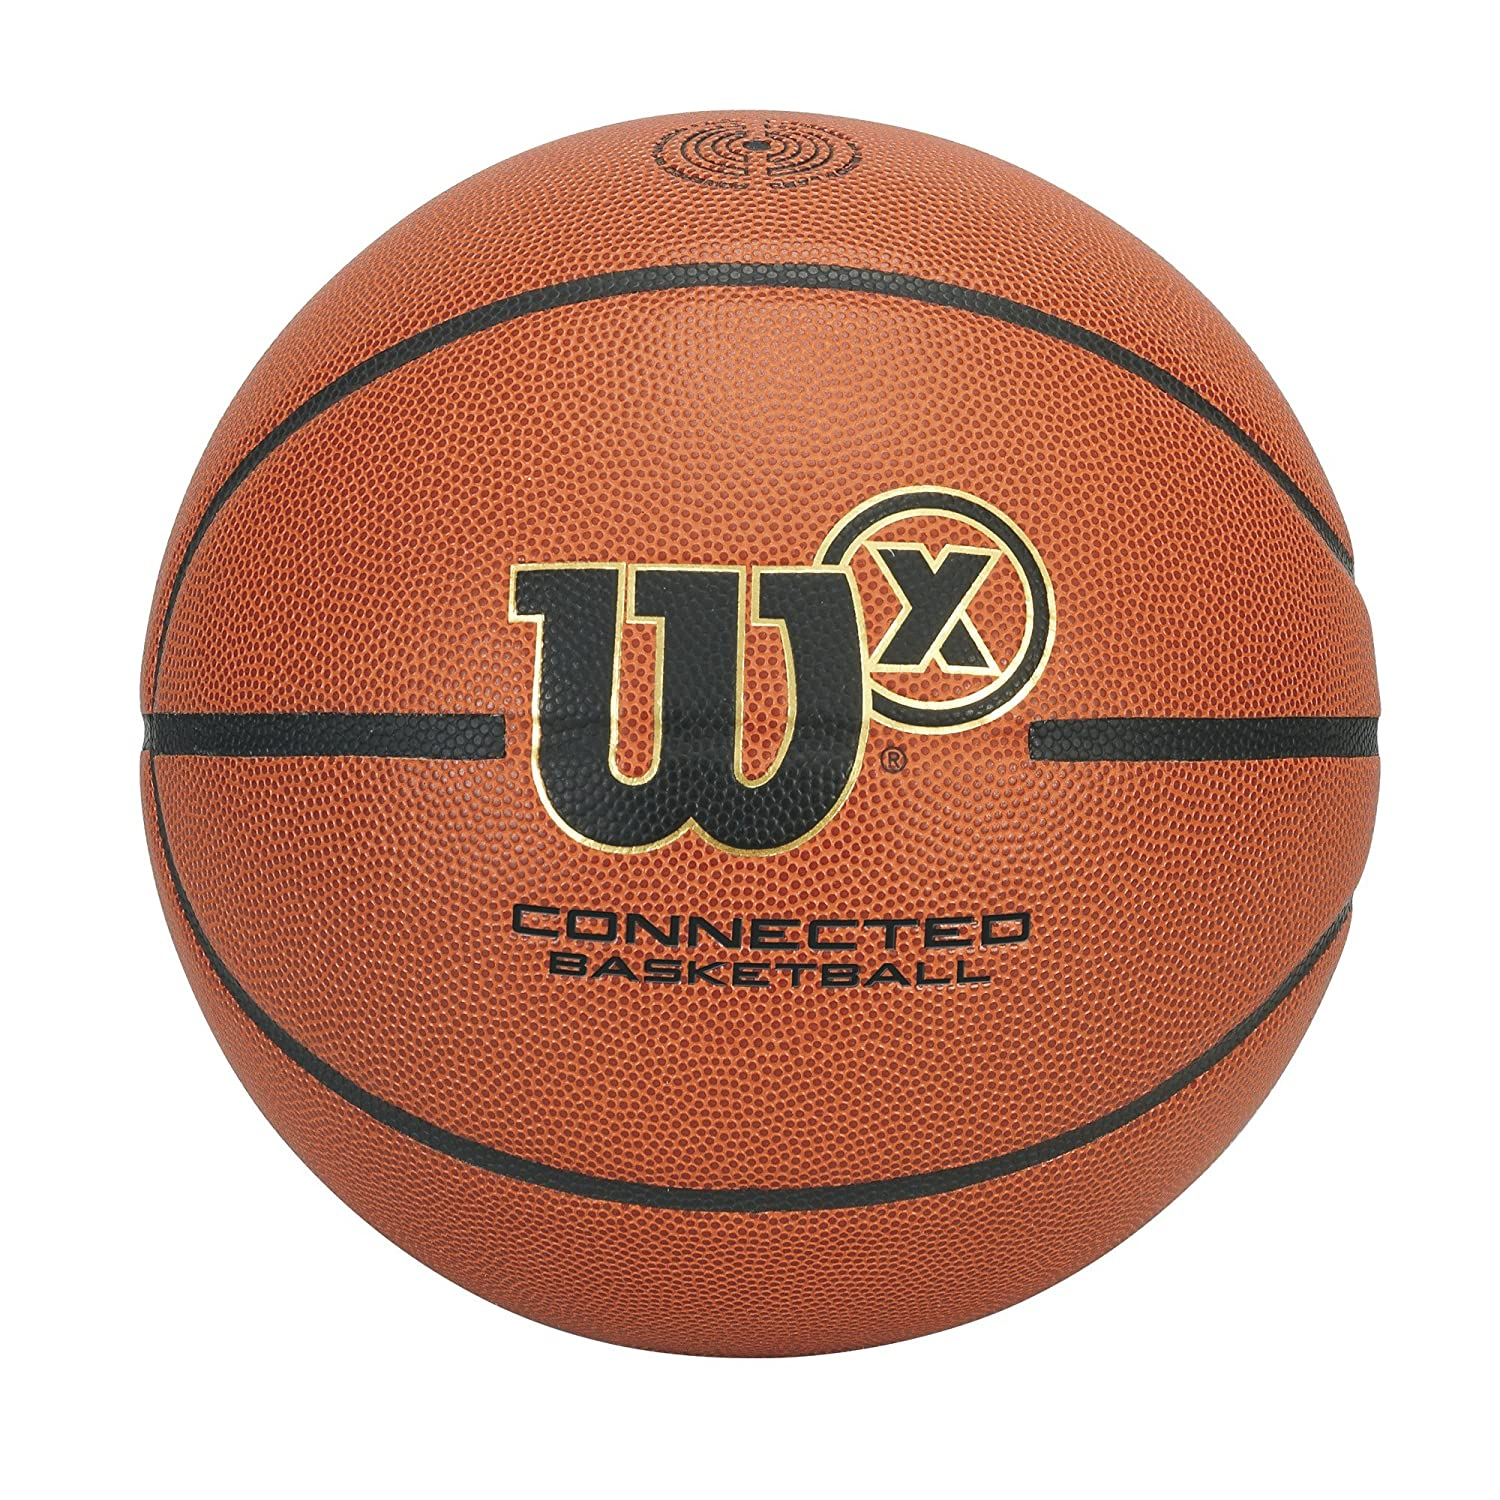 Image of Basketballs Wilson X Connected Smart Basketball with Sensor That Tracks Shots